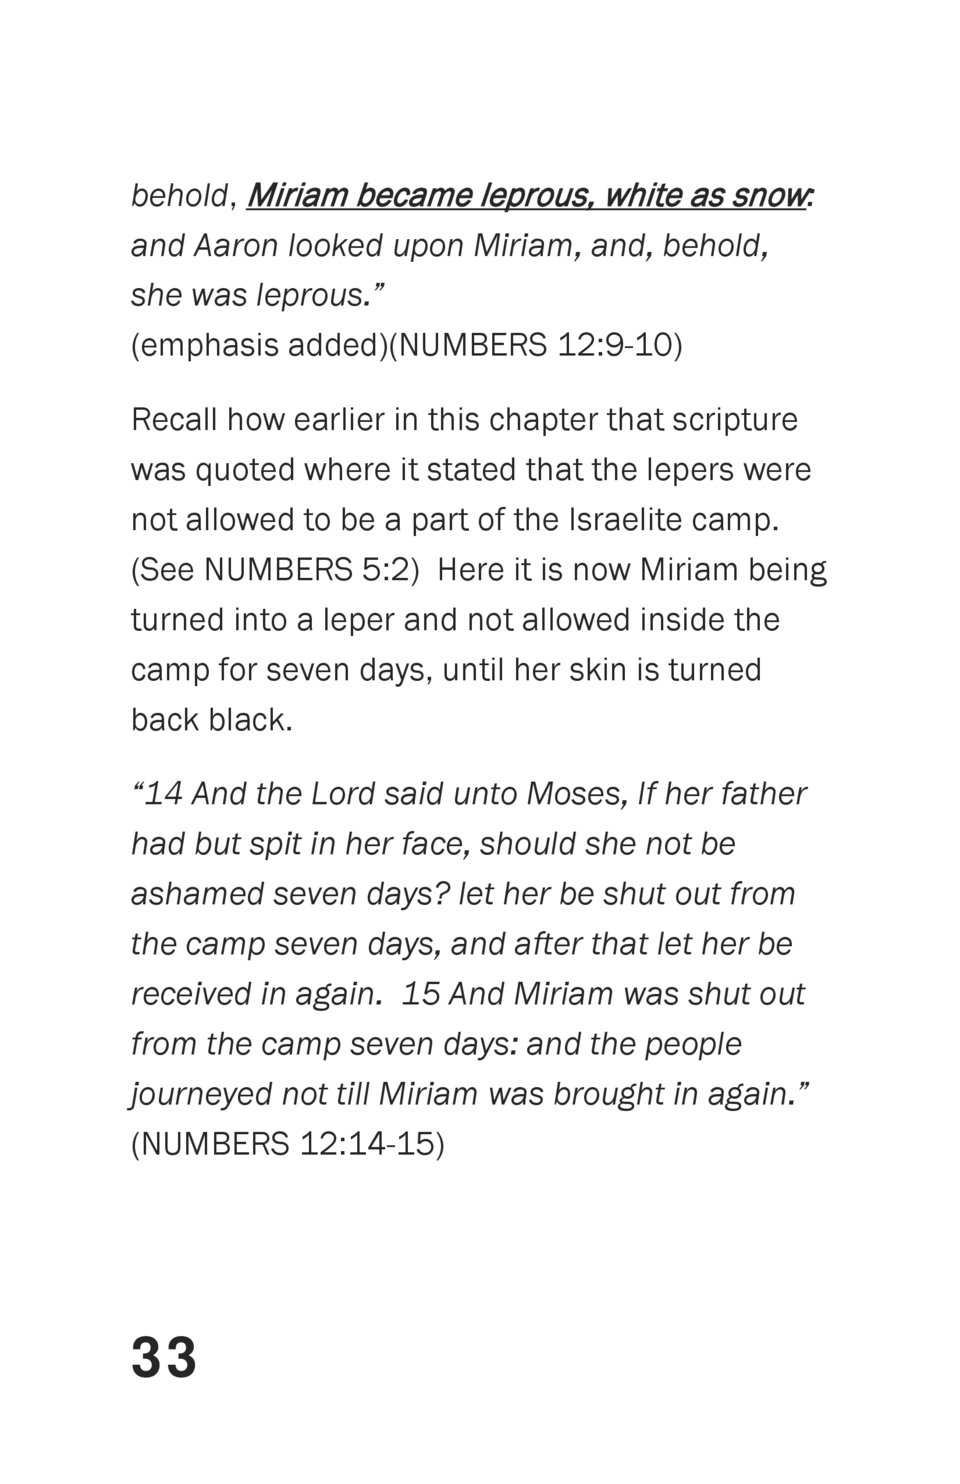 behold, Miriam became leprous, white as snow  and Aaron looked upon Miriam, and, behold, she was leprous.     emphasis add...